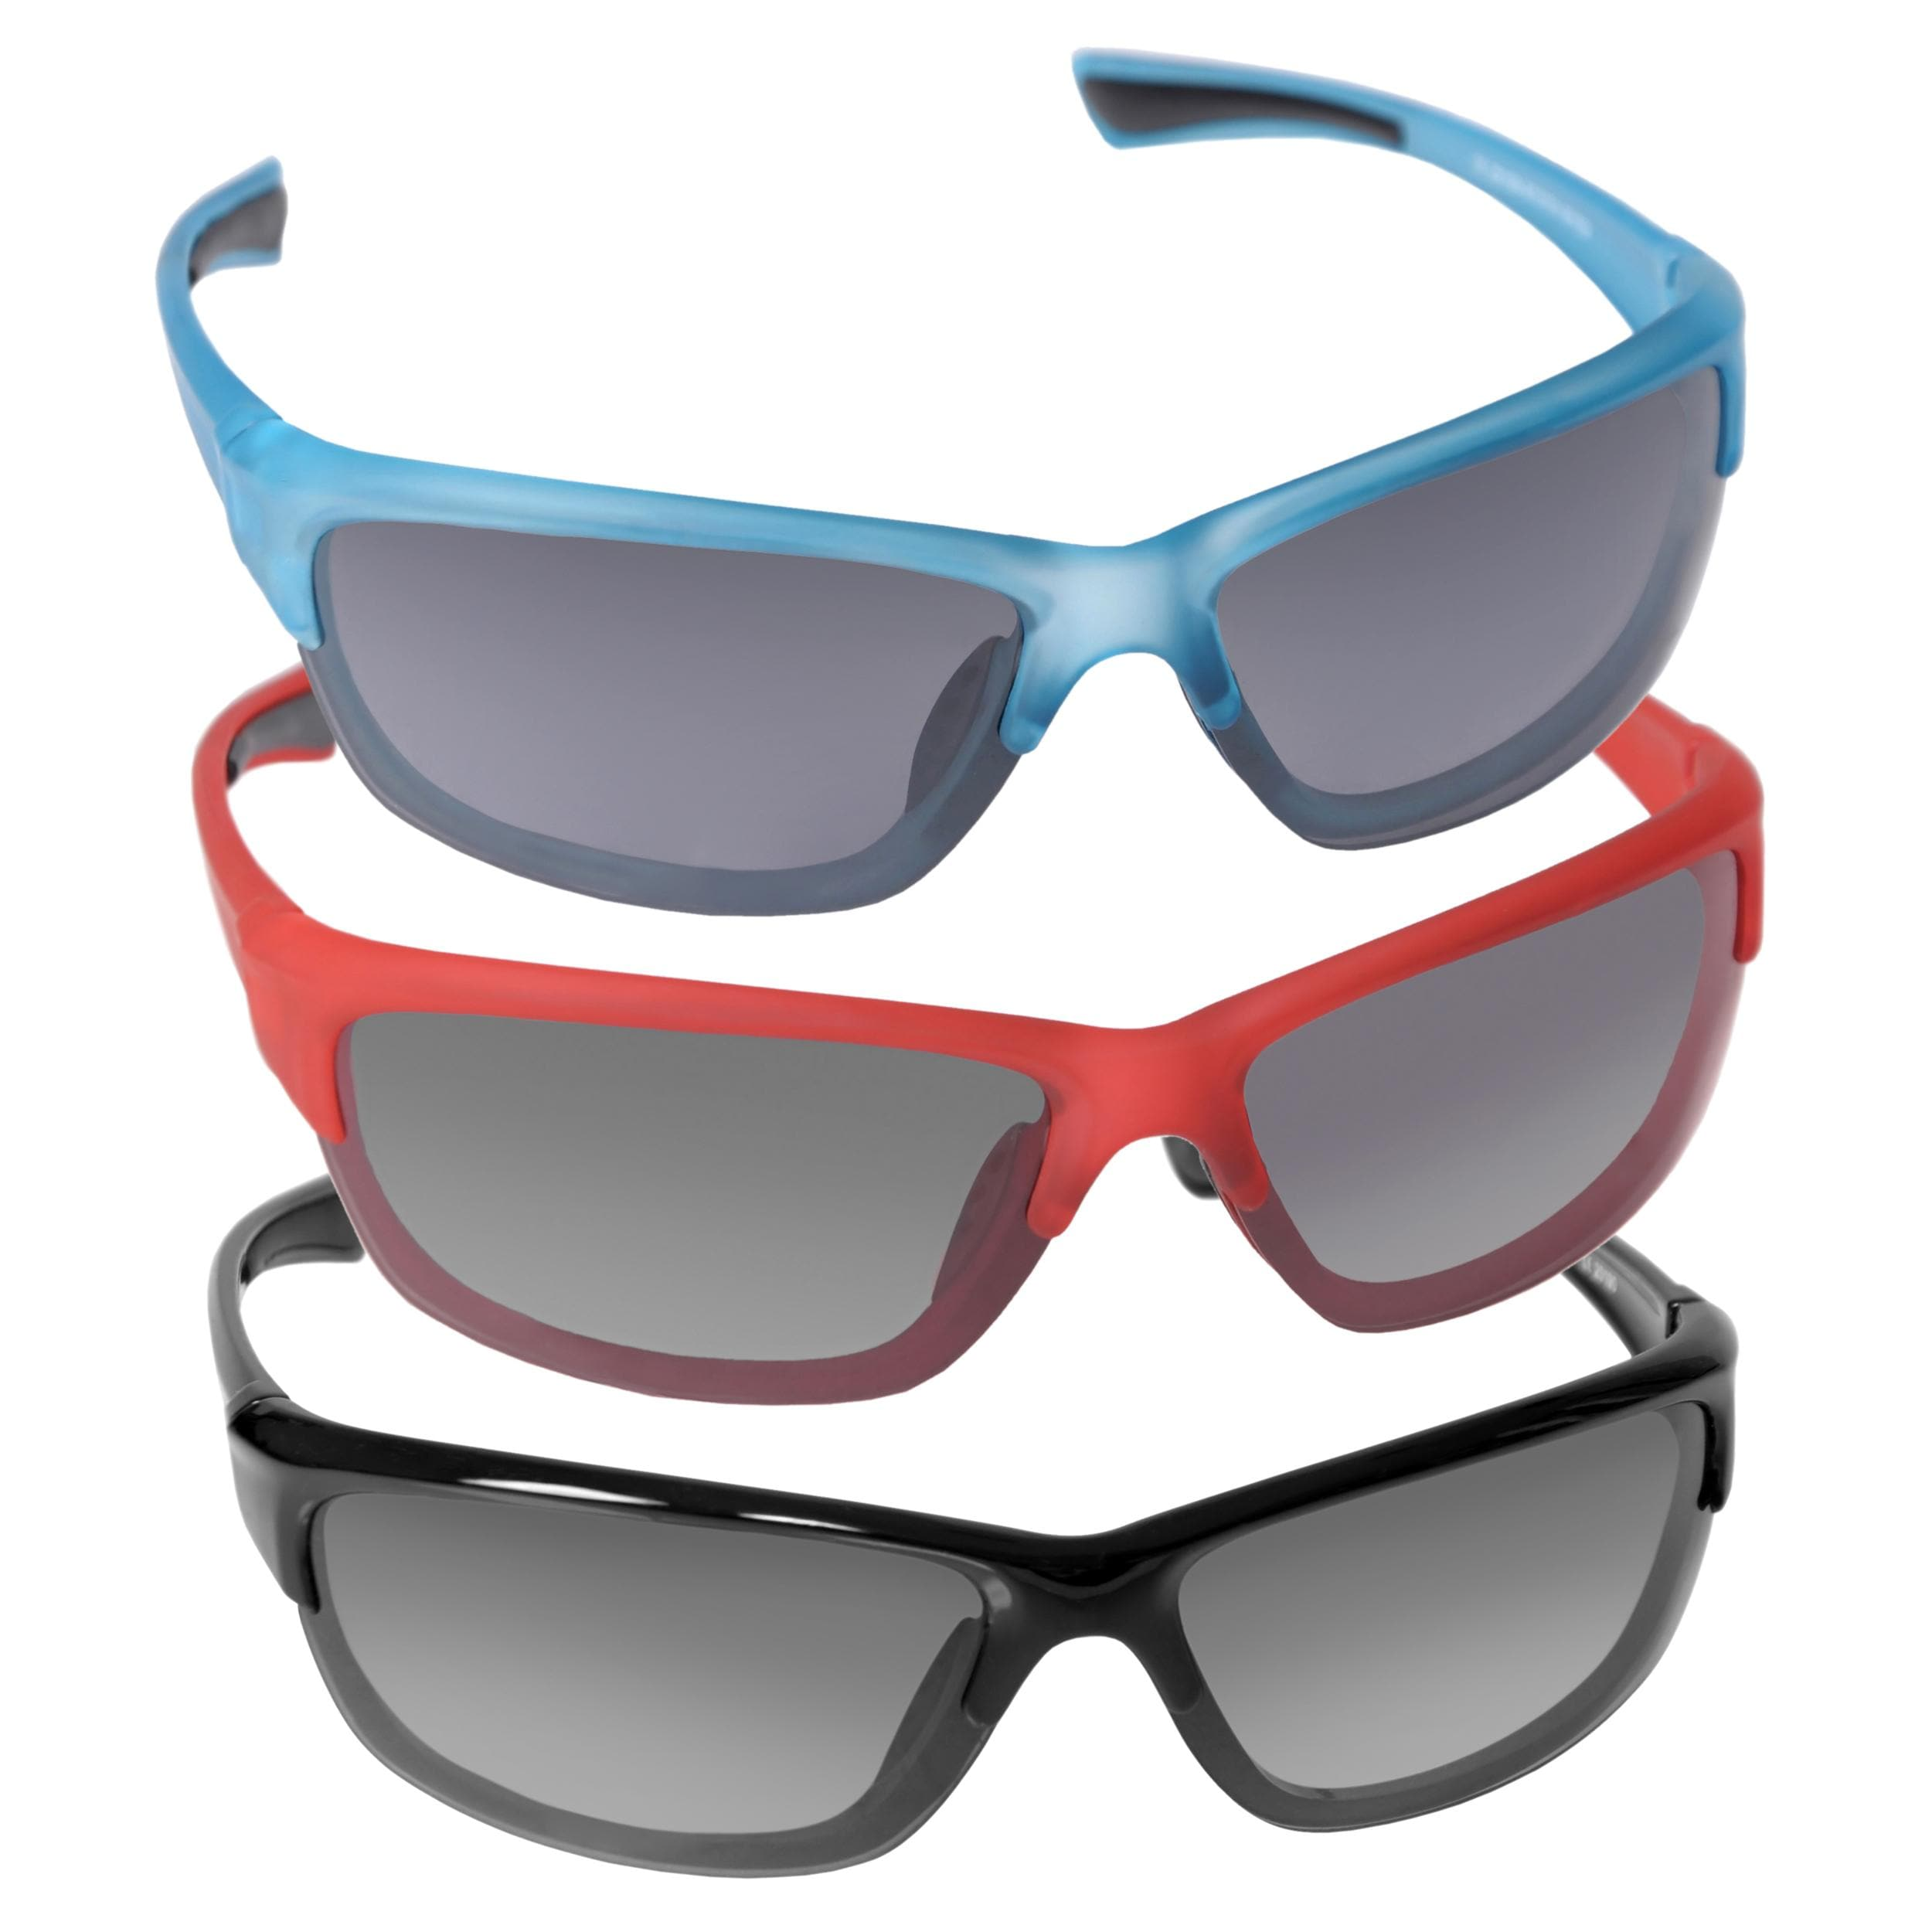 Adi Designs UV Protection Women's Sport Sunglasses